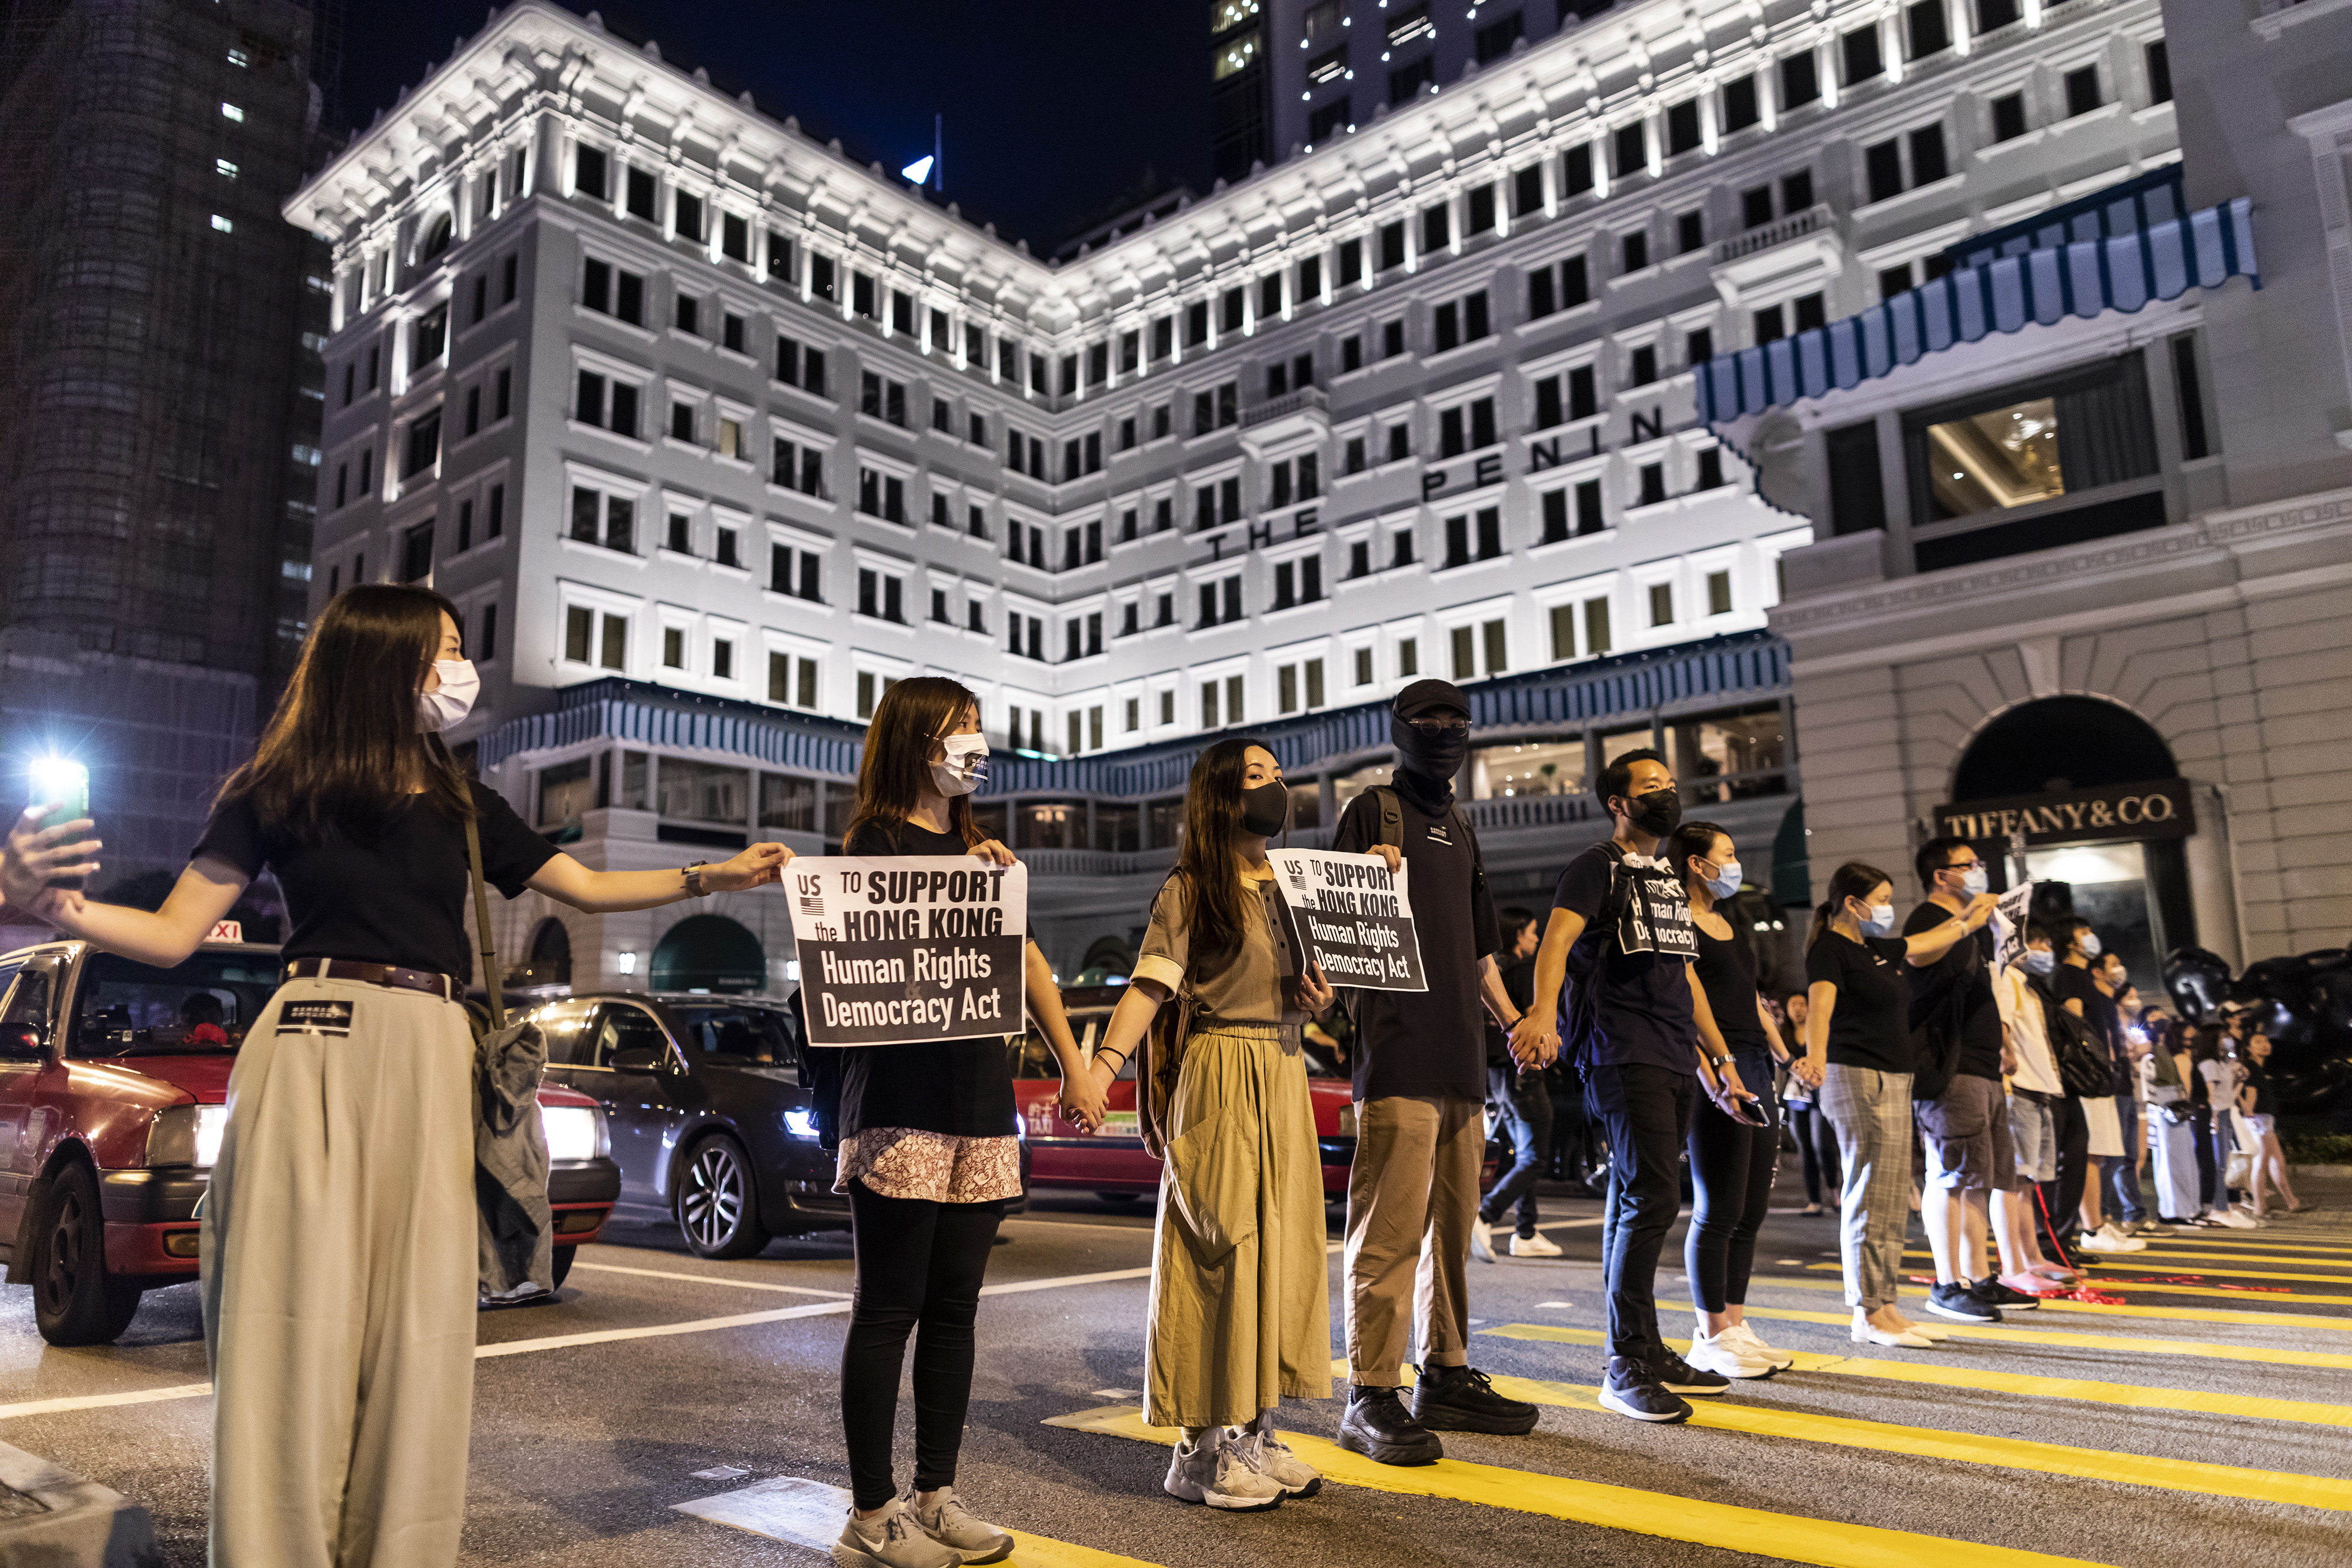 Demonstrators join hands to form a human chain in front of the Peninsula Hotel during the Hong Kong Way event in the Tsim Sha Tsui district of Hong Kong, China, on Friday, Aug. 23, 2019.